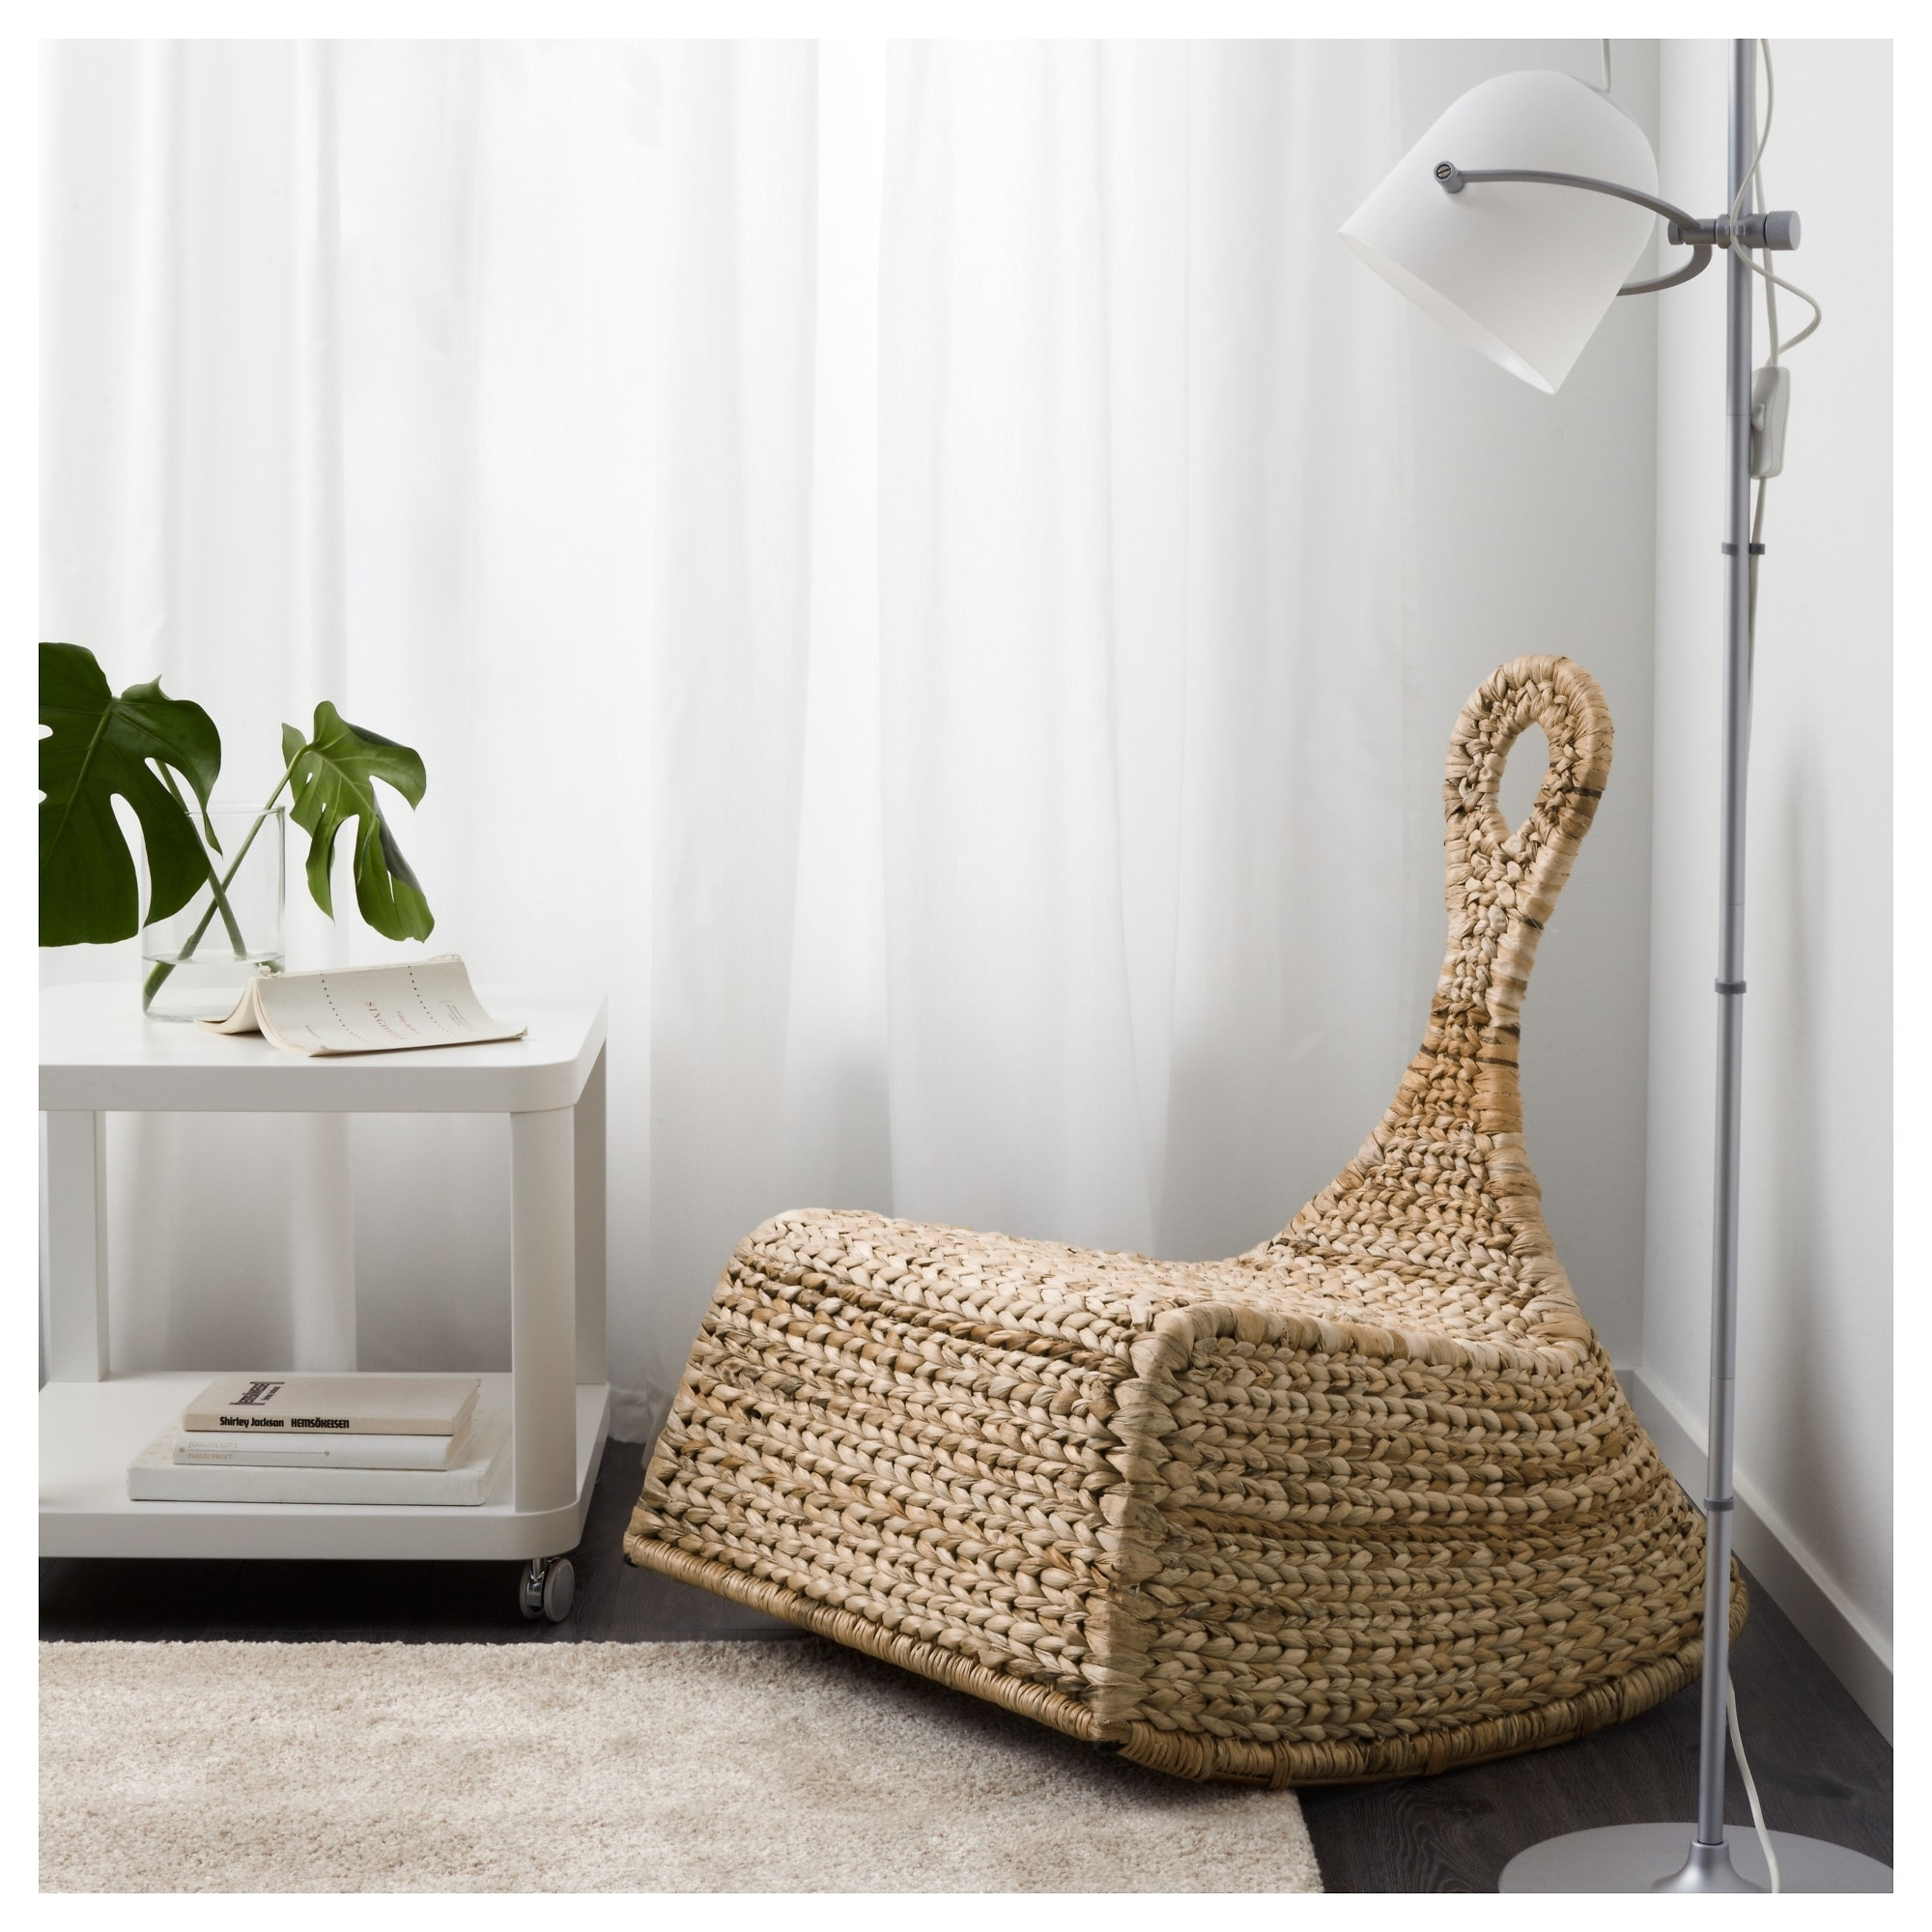 Ikea Ps Gullholmen Rocking Chair – Ikea Regarding Current Banana Leaf Chairs With Cushion (#11 of 20)